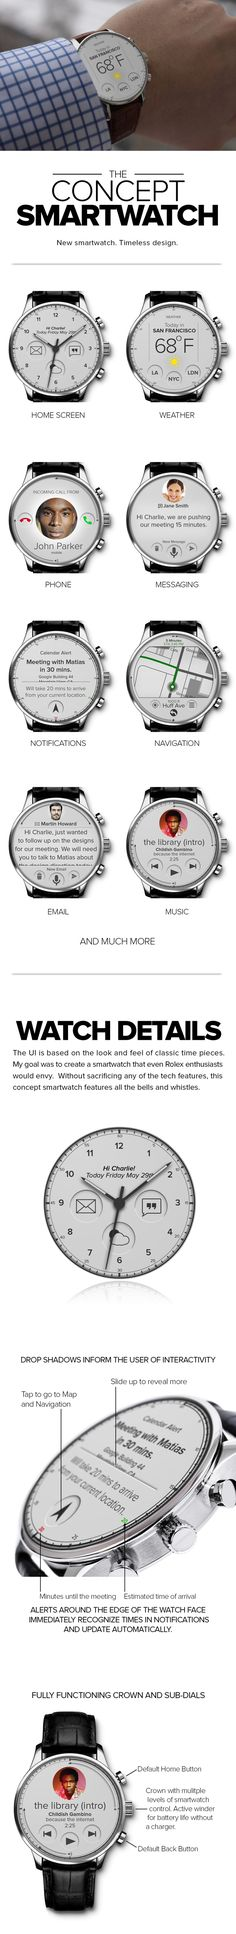 CONCEPT SMARTWATCH by Charlie No, via Behance [Wearable Electronics: http://futuristicnews.com/tag/wearable/ Smart Watches & Wearable Electronics for SALE: http://futuristicshop.com/category/smart-watches-wearable-electronics/]